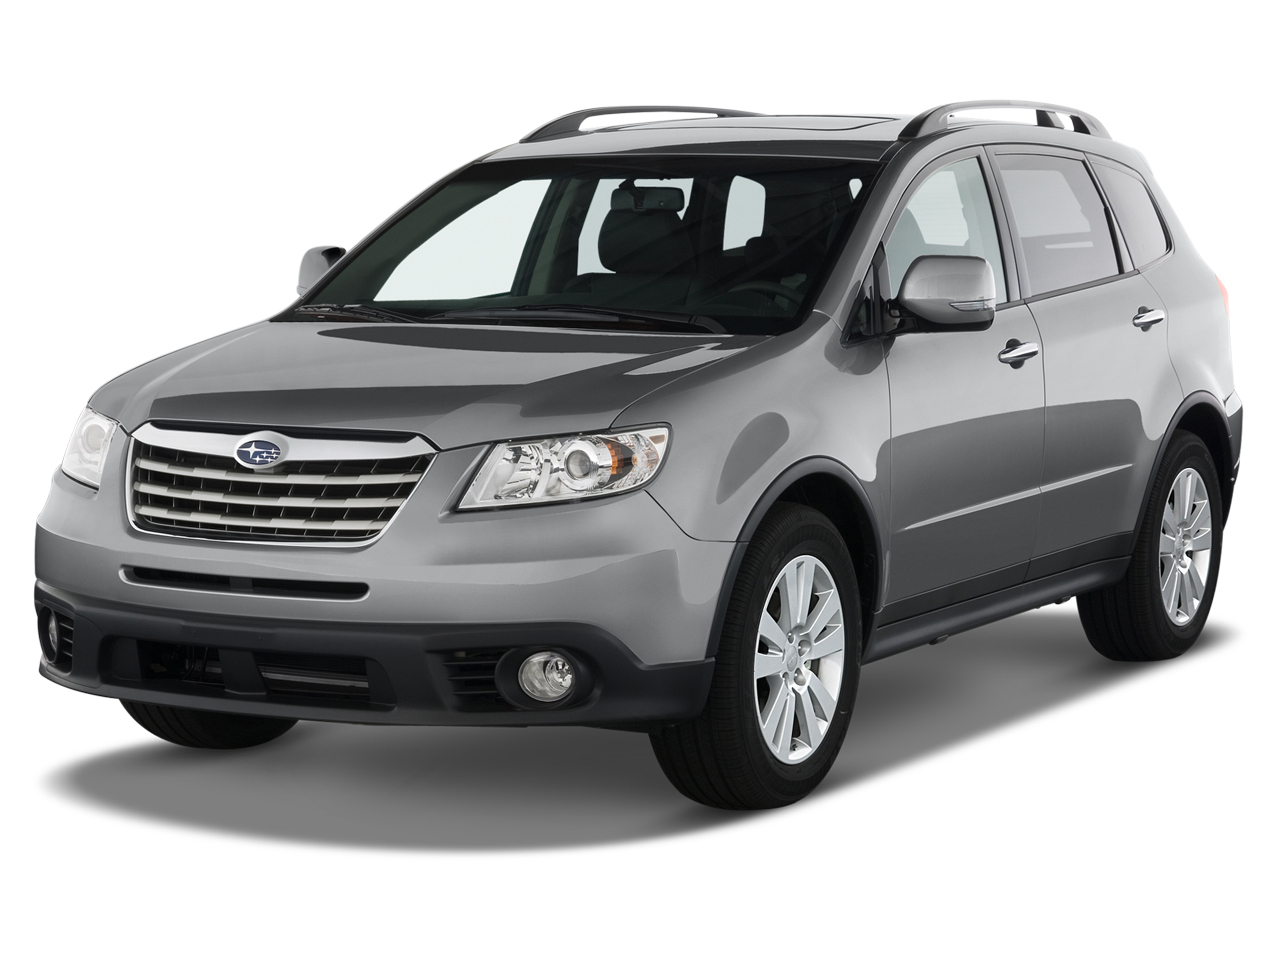 Cars For Sale In Fresno Ca >> 2012 Subaru Tribeca Review, Ratings, Specs, Prices, and ...